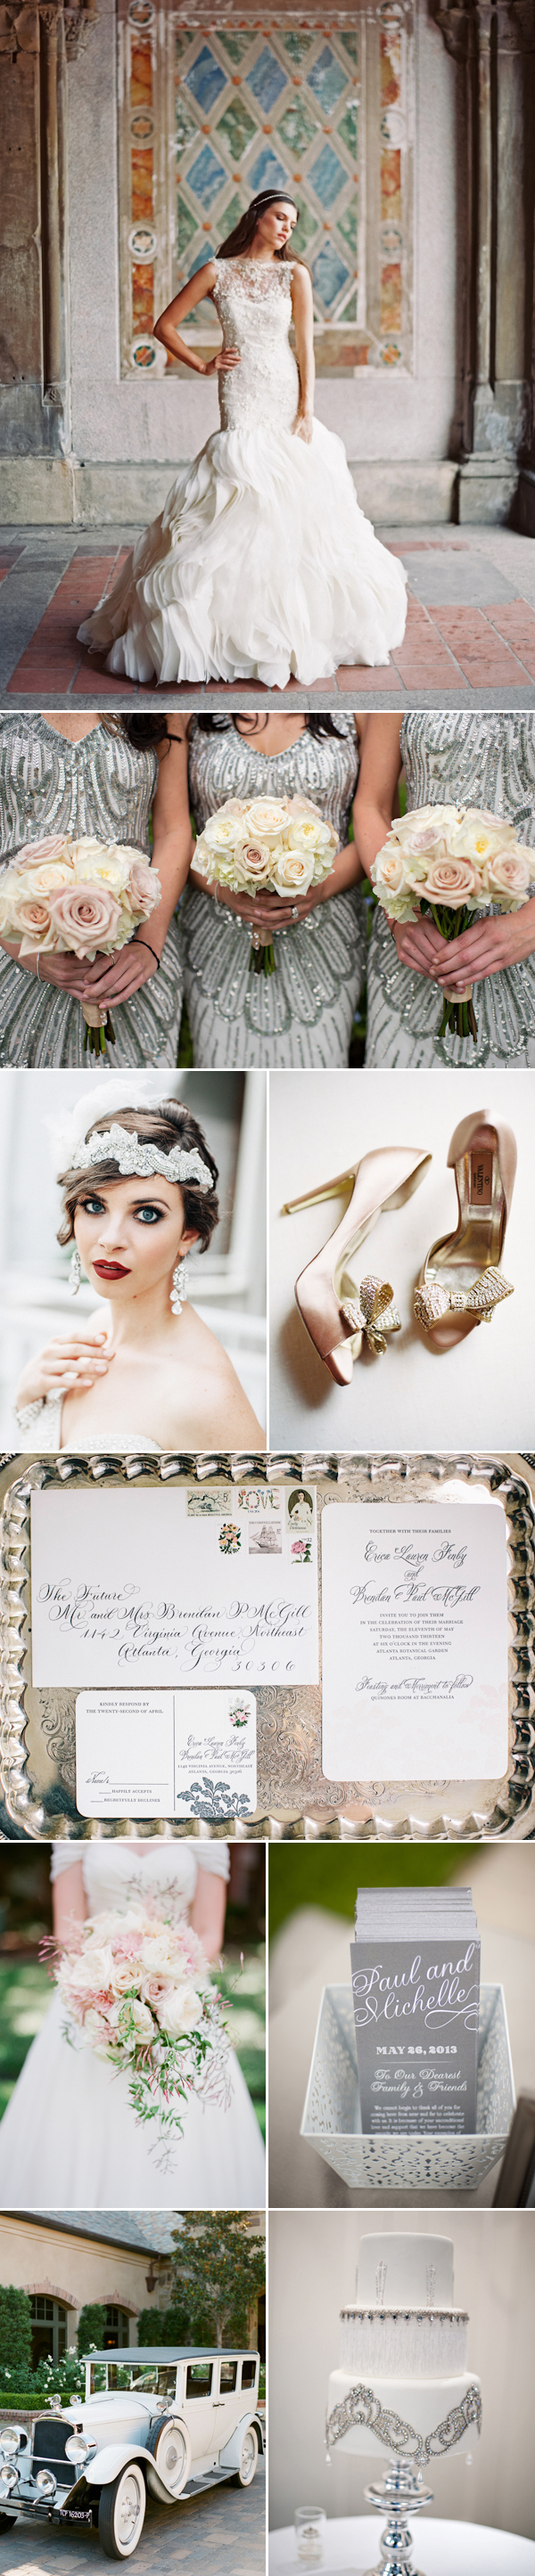 silver and blush wedding color palette inspiration board | via junebugweddings.com